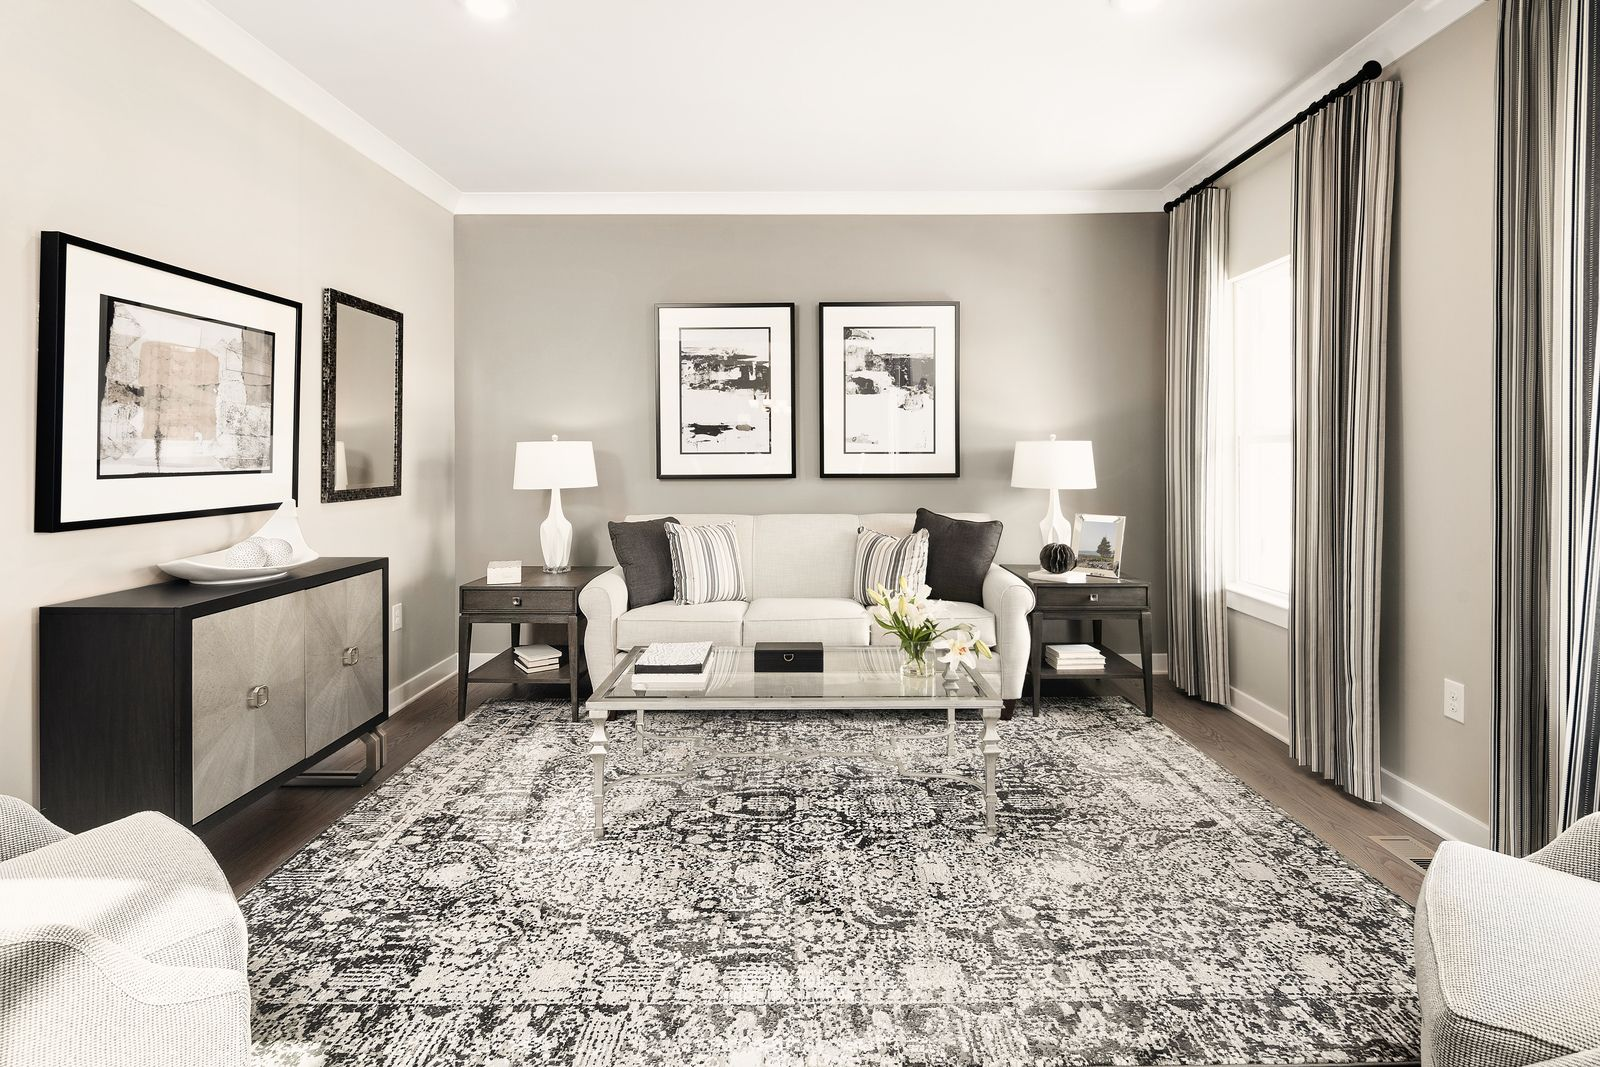 Bedroom featured in the Corsica By Ryan Homes in Pittsburgh, PA